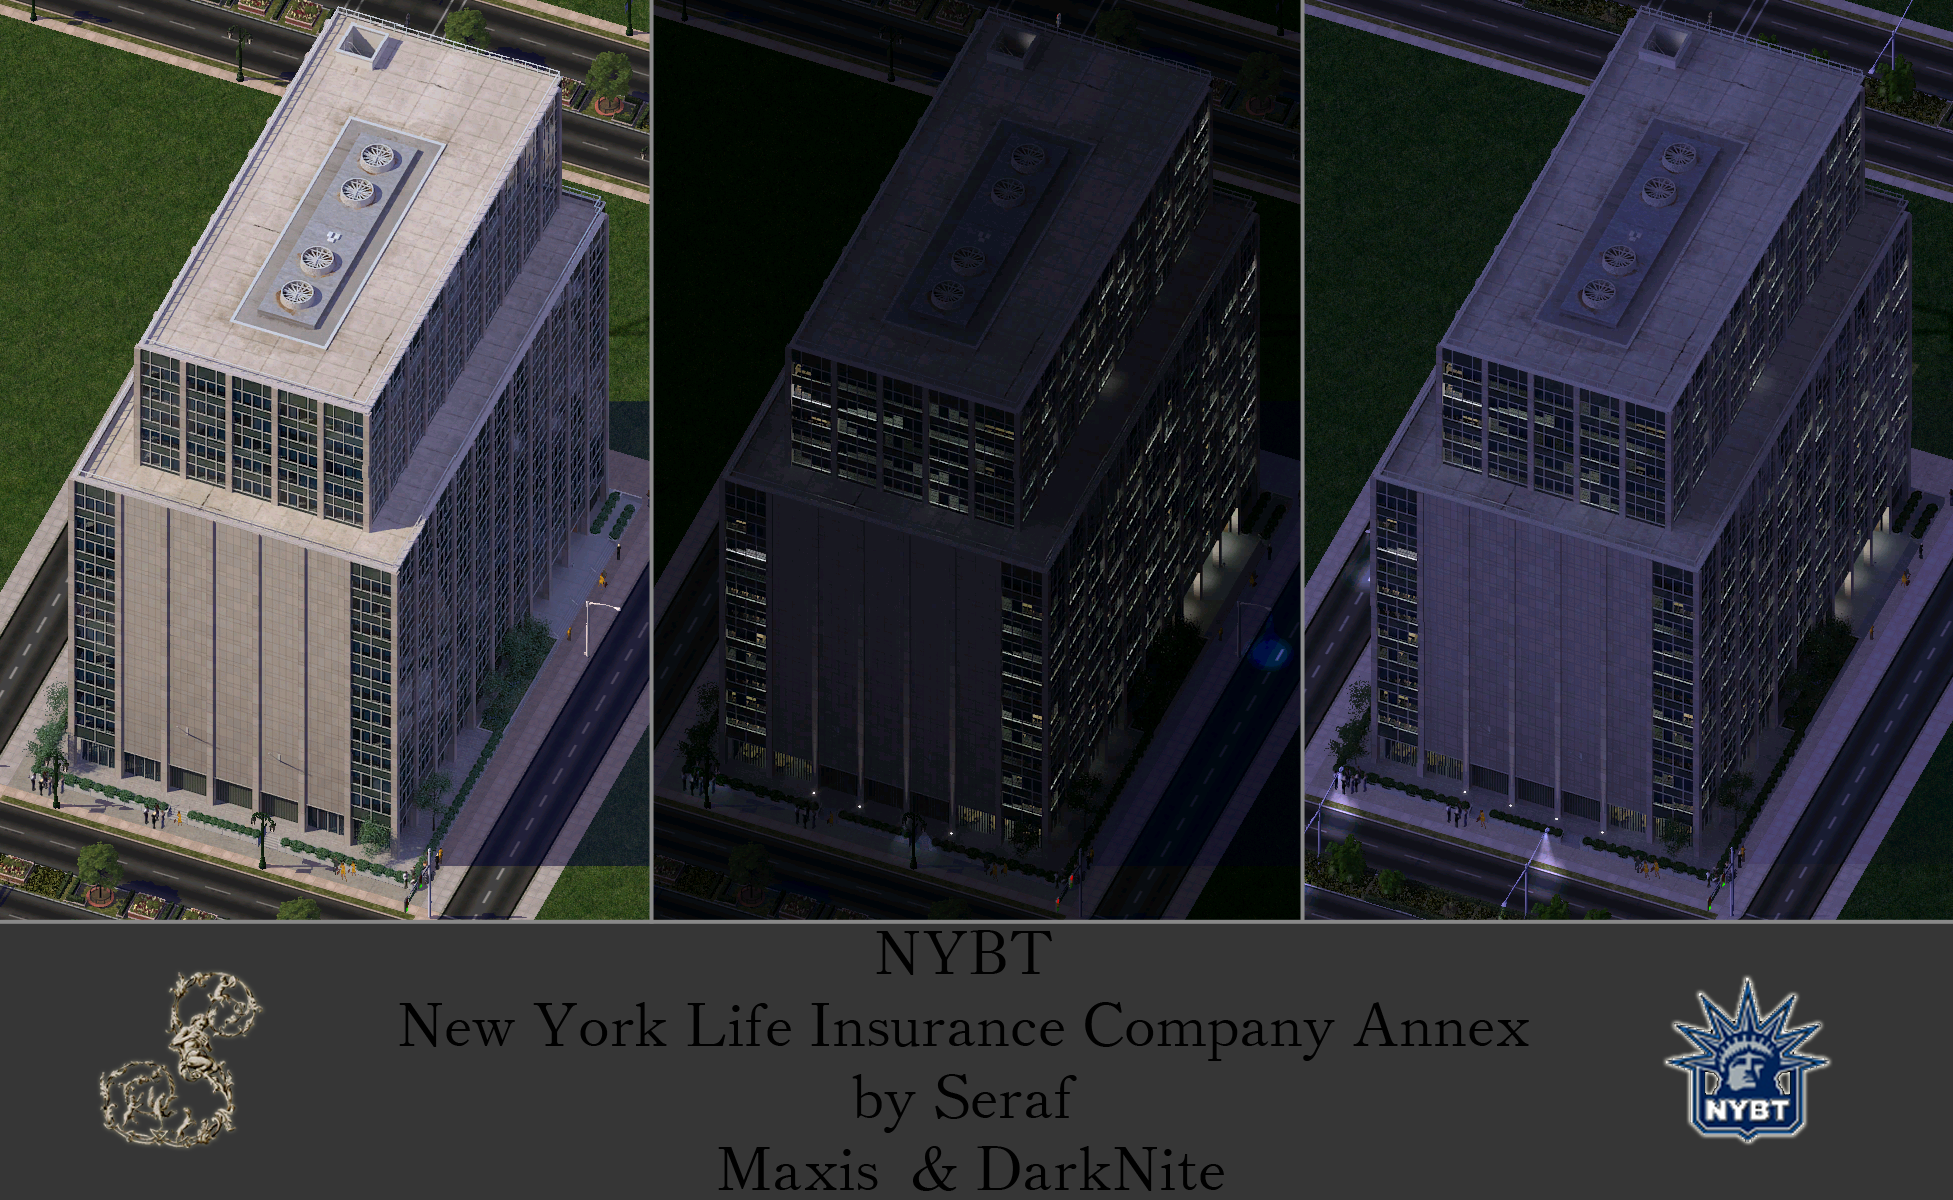 Nybt New York Life Insurance Company Annex Simcity 4 Buildings